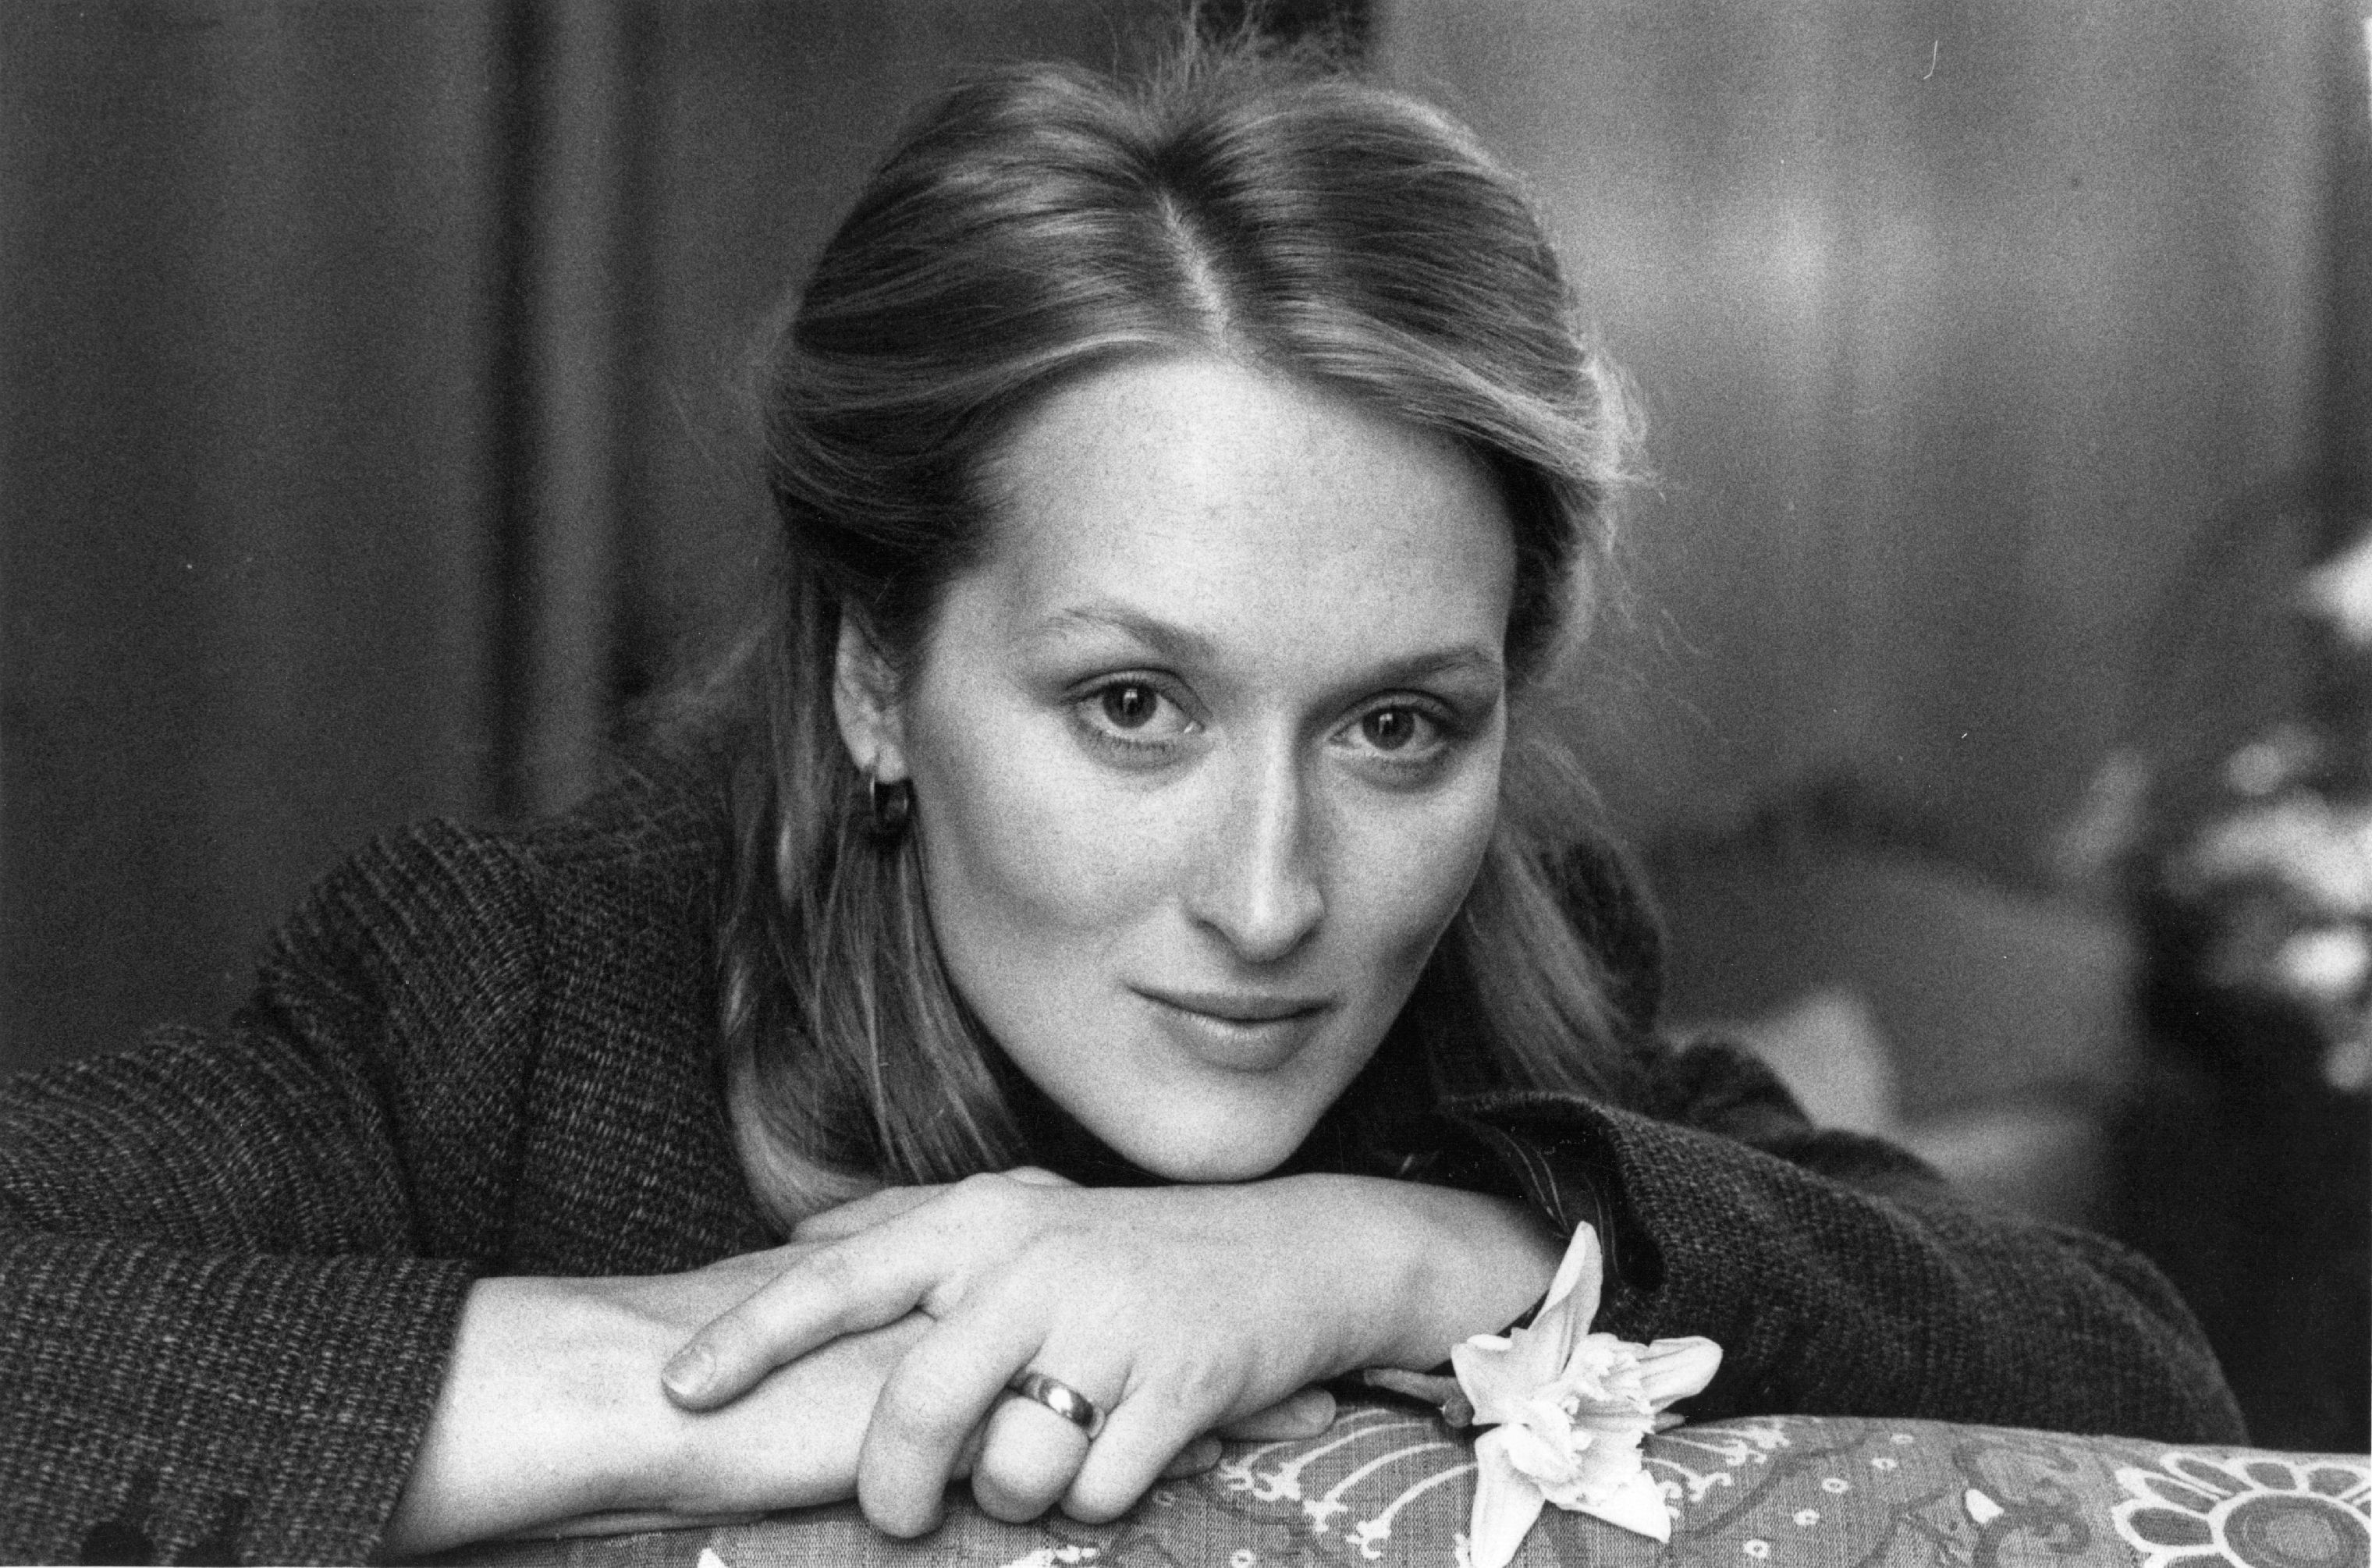 Actress Meryl Streep in the 1970s | Source: Getty Images